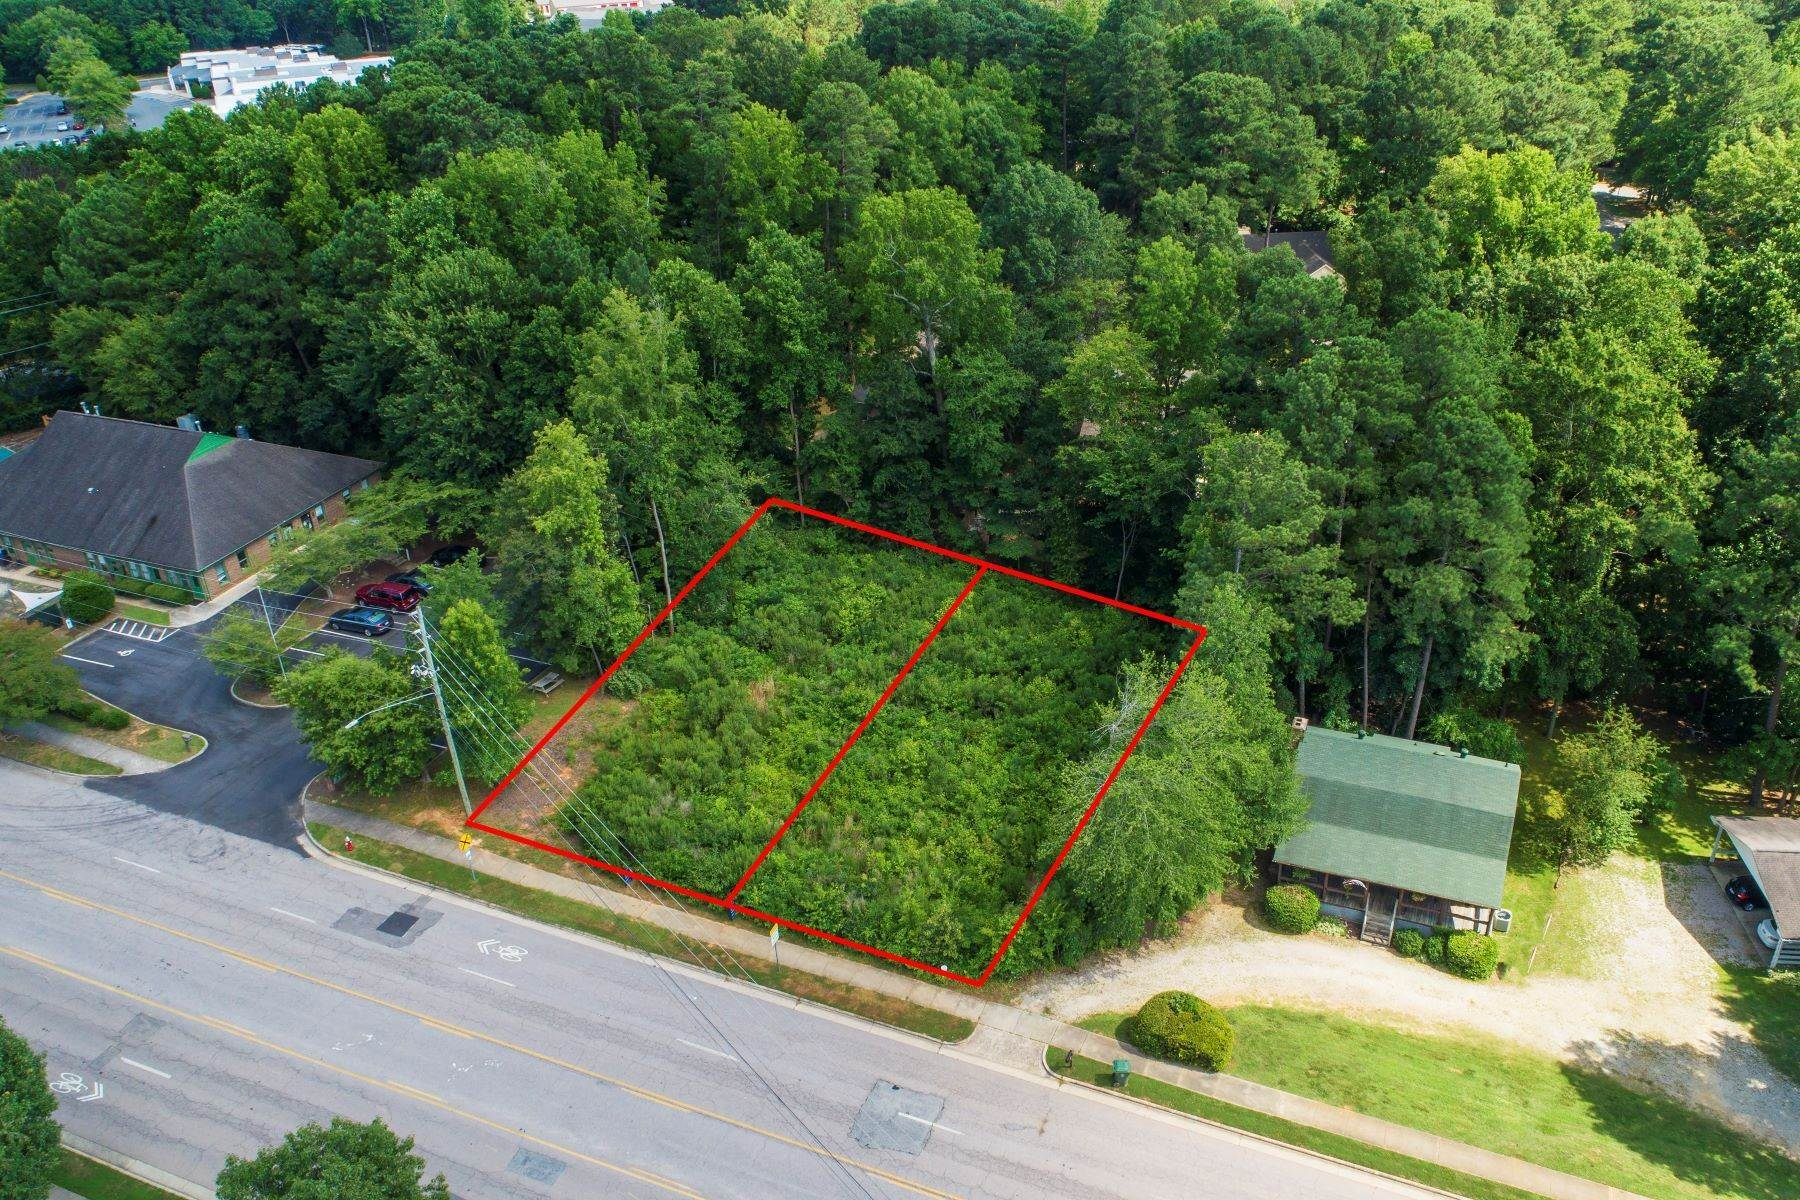 2. Land for Sale at 203 High House Rd. Cary, NC 203 High House Rd. Cary, North Carolina 27513 United States